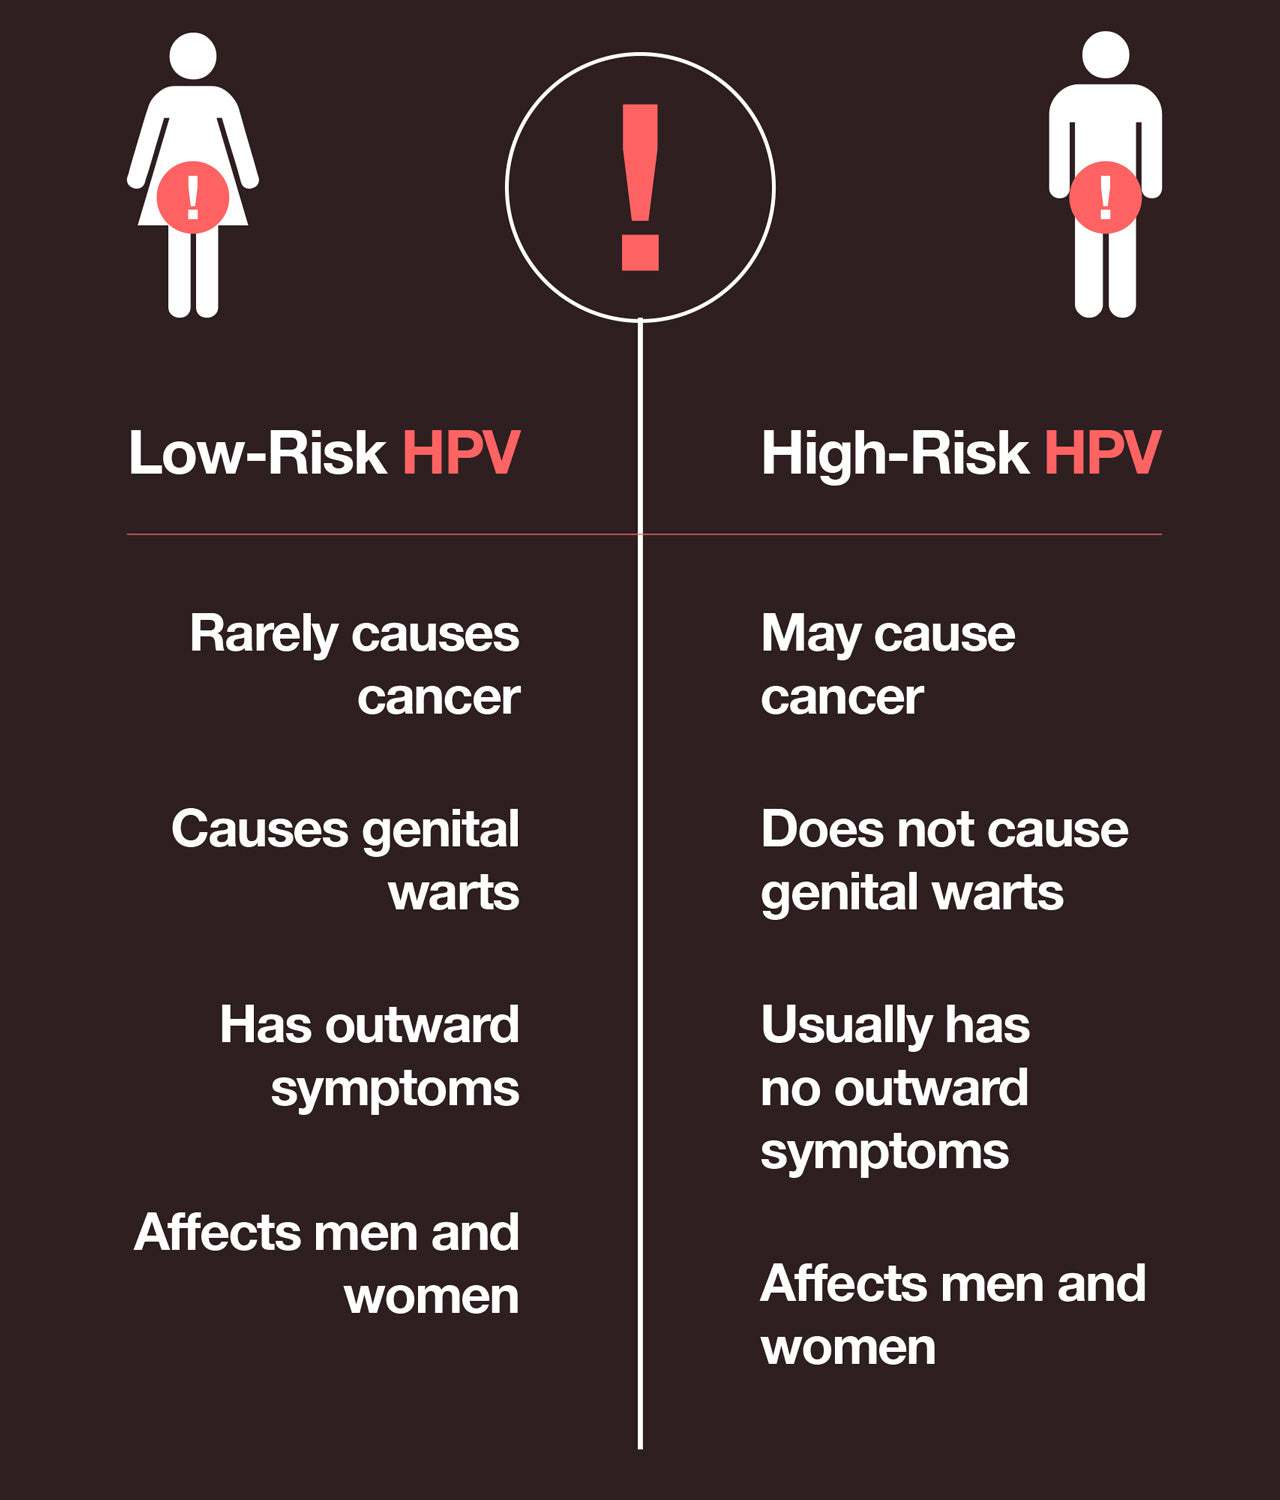 differences between low risk and high risk HPV